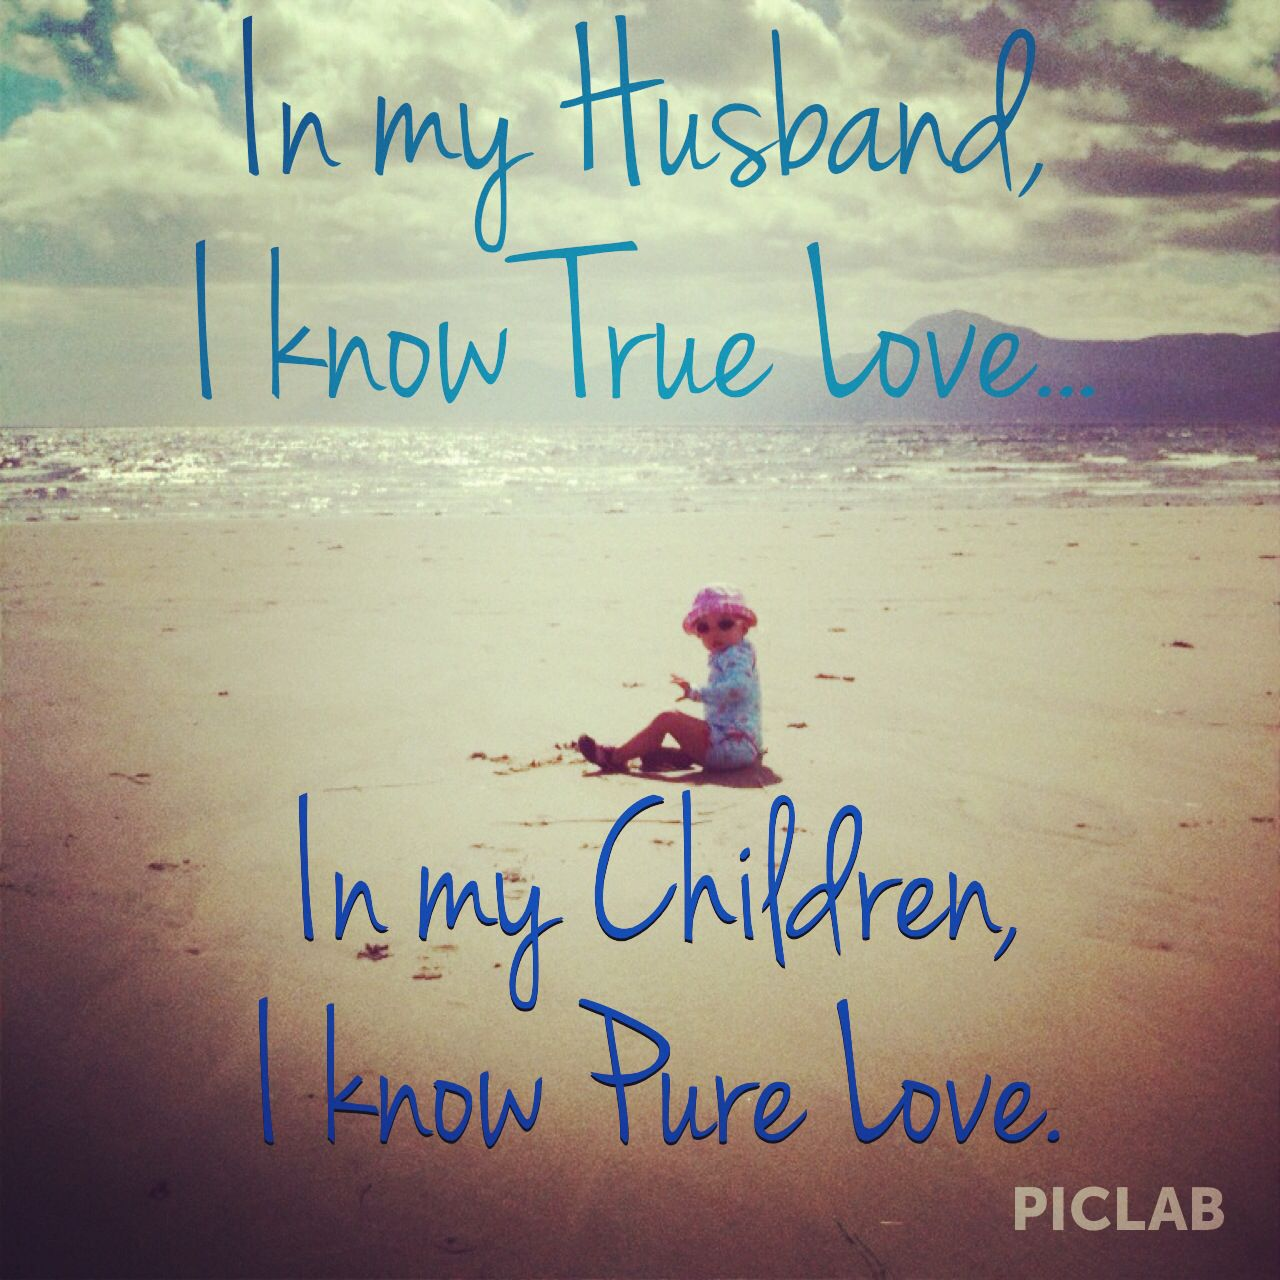 I Love My Children Quotes Truth  Love Quote Husband & Children In My Husband I Know True